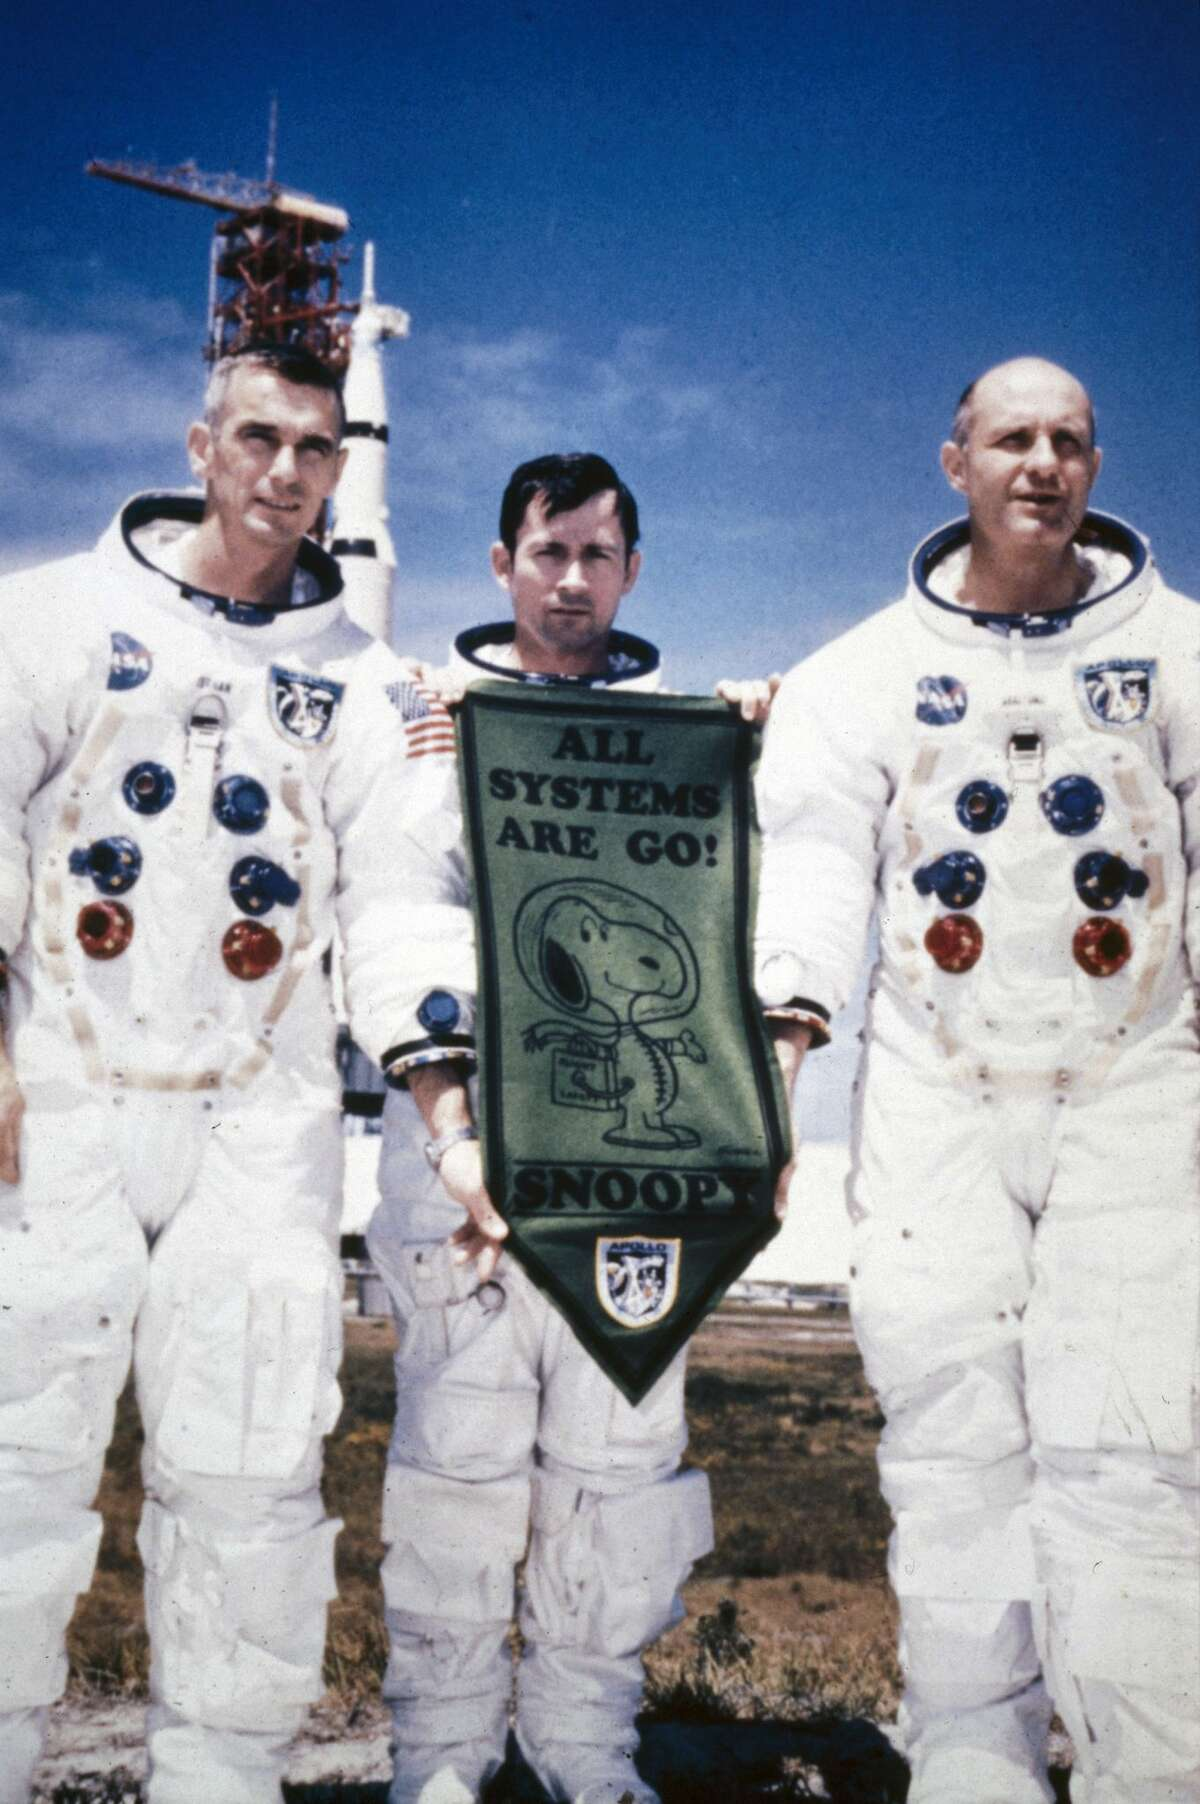 UNITED STATES - JUNE 25: Left to right; Eugene Cernan, John Young and Thomas Stafford standing in spacesuits in front of the Saturn V rocket carried the Apollo 10 spacecraft. Young is holding a pennant with the legend ?All Systems Are Go!? and a cartoon of Snoopy in a spacesuit. The Apollo 10 Lunar Module was codenamed Snoopy and the Command Module Charlie Brown. Apollo 10 was launched on 18th May 1969 on a lunar orbital mission, the dress rehearsal for the Apollo 11 moon landing mission which took place two months later. (Photo by SSPL/Getty Images)